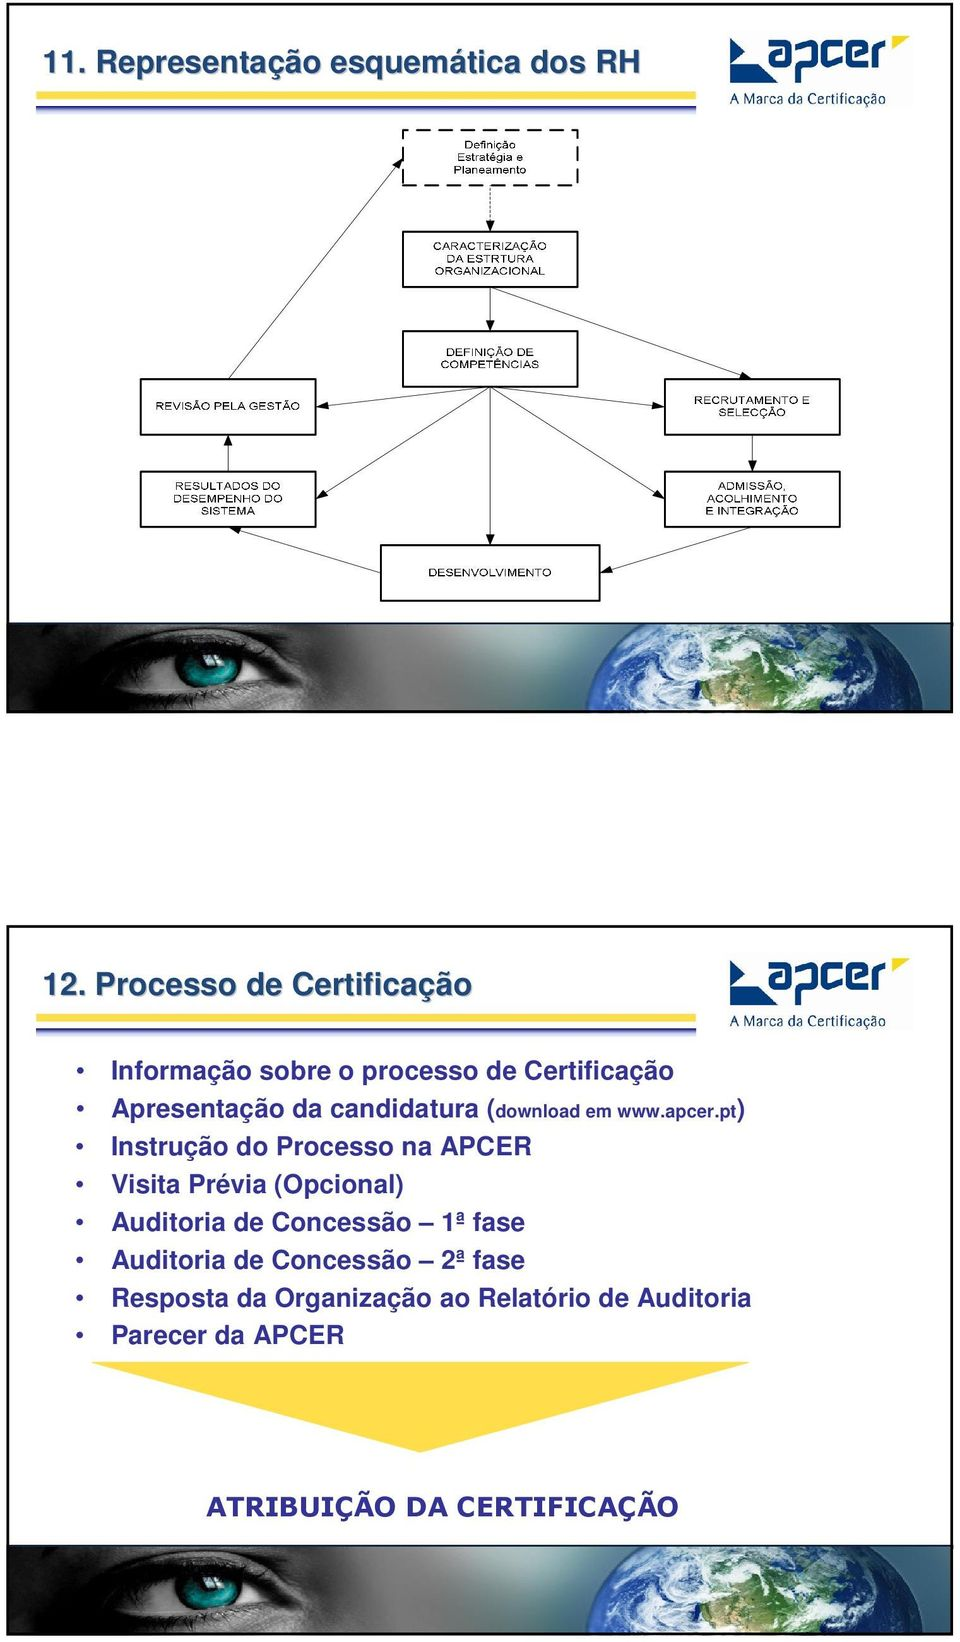 candidatura (download em www.apcer.